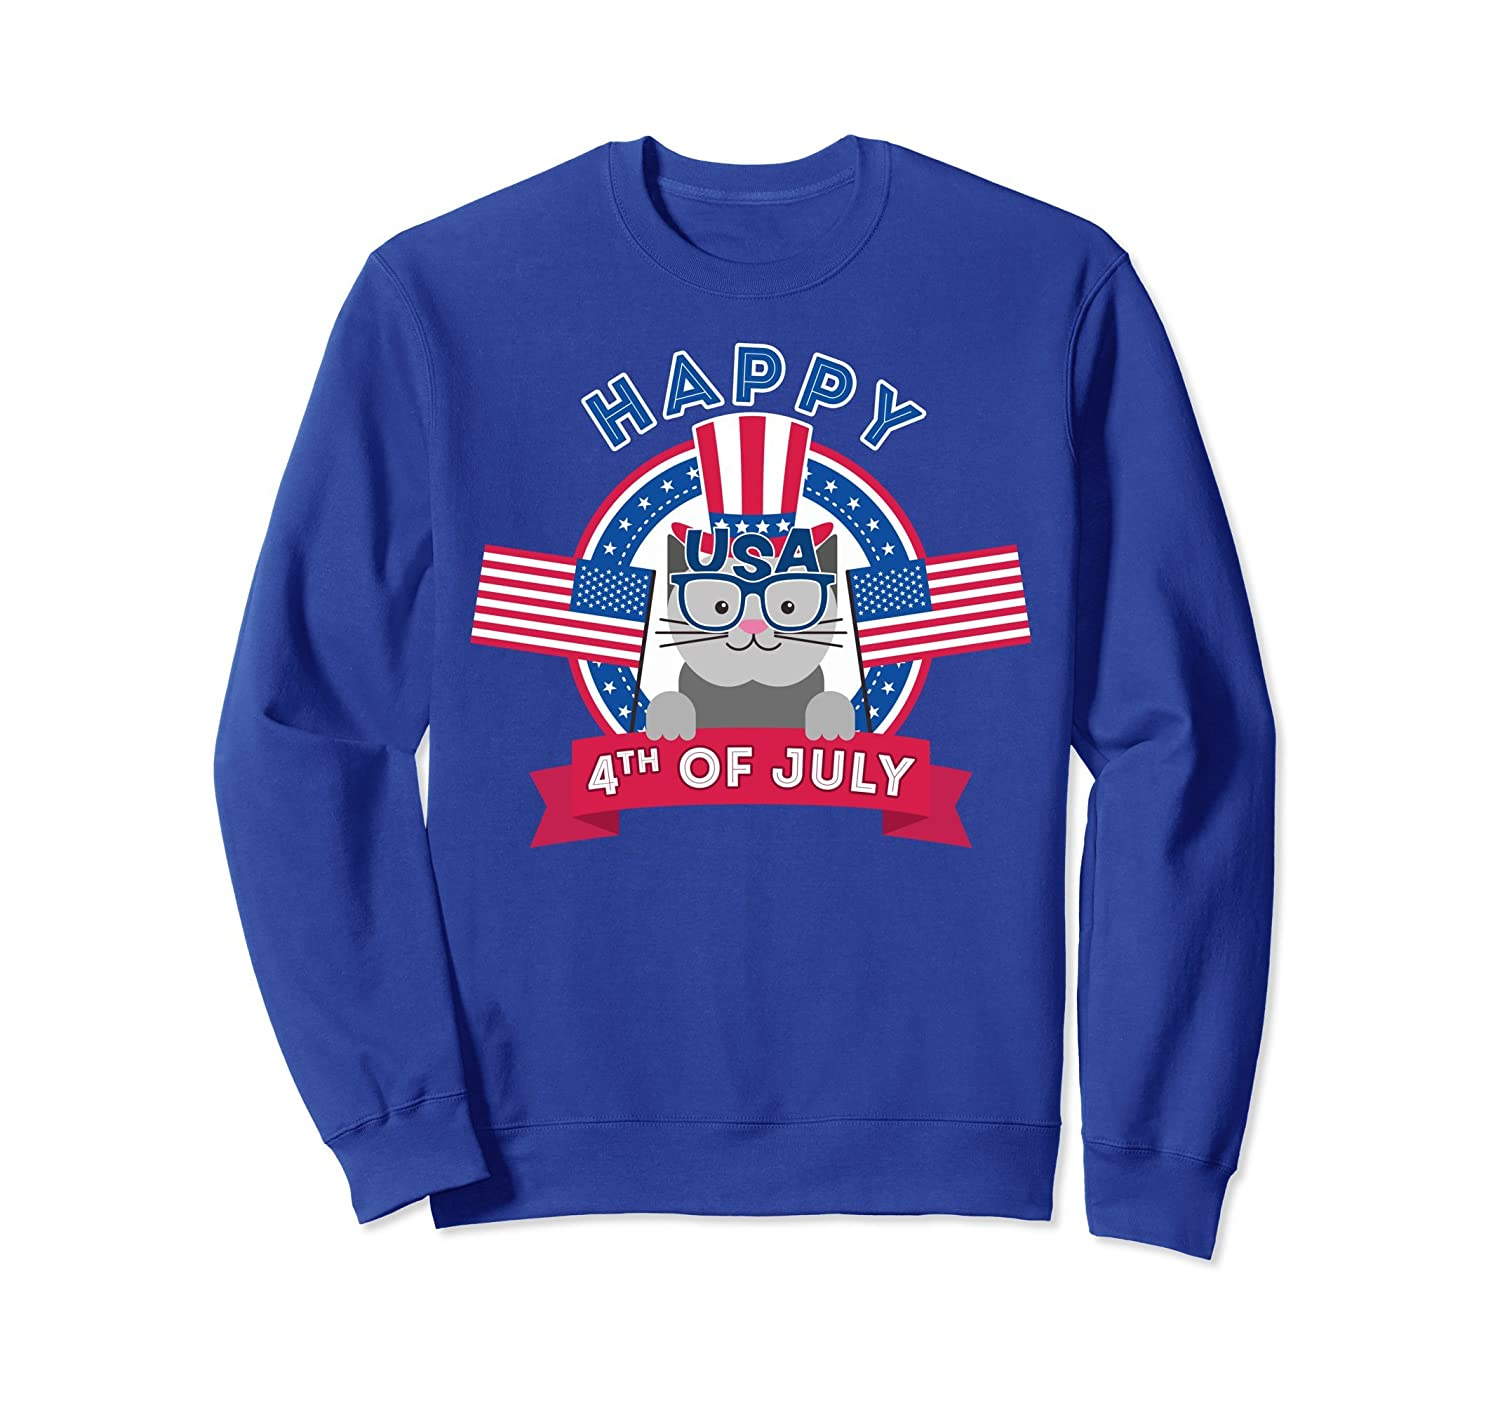 4th of July Cat Sweatshirt - Cat shirt for Kids Happy 4th!-AZP